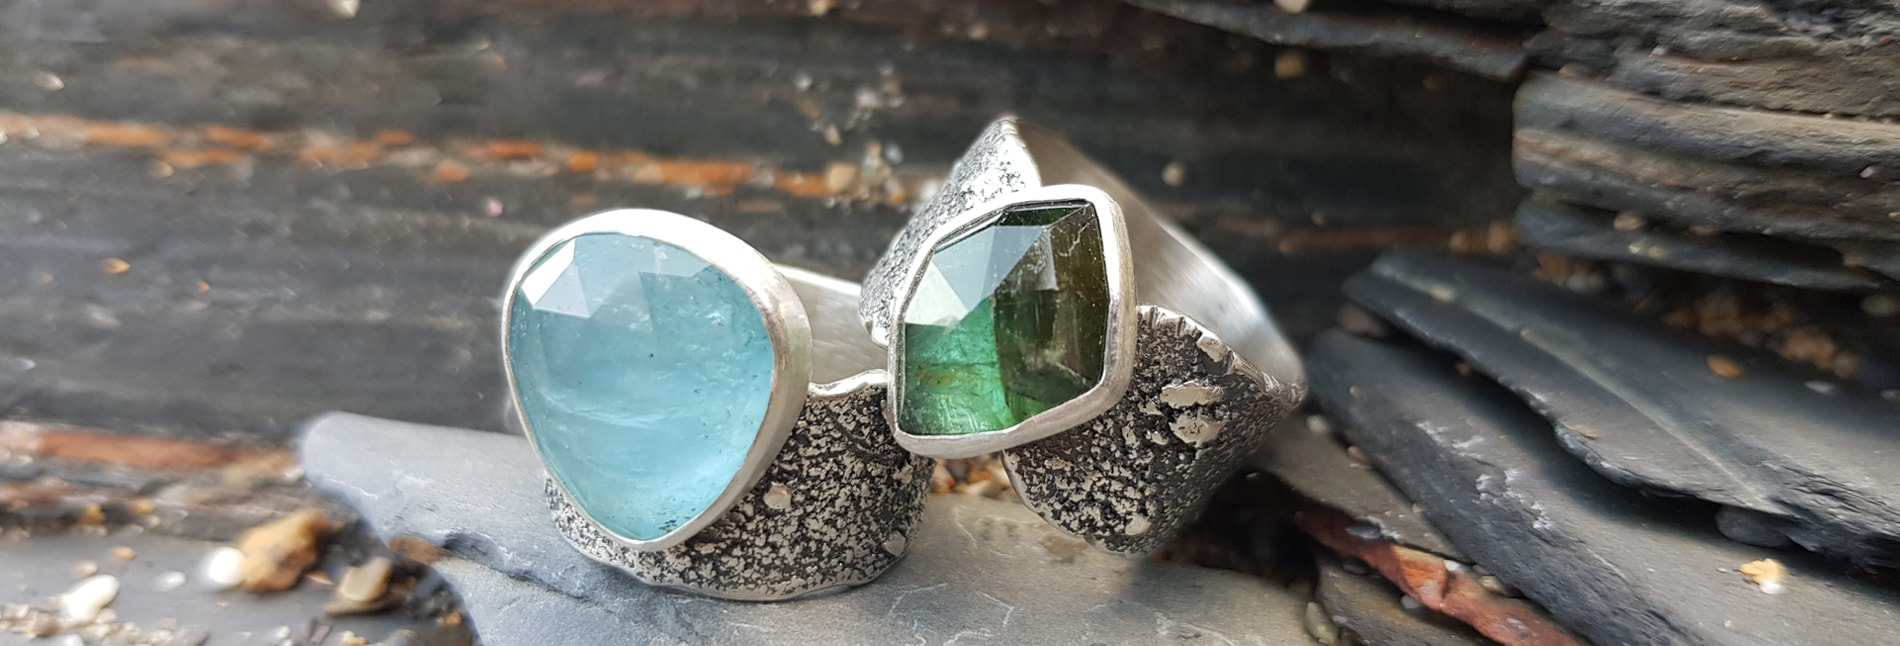 Aquamarine and green Tourmaline rings in textured silver